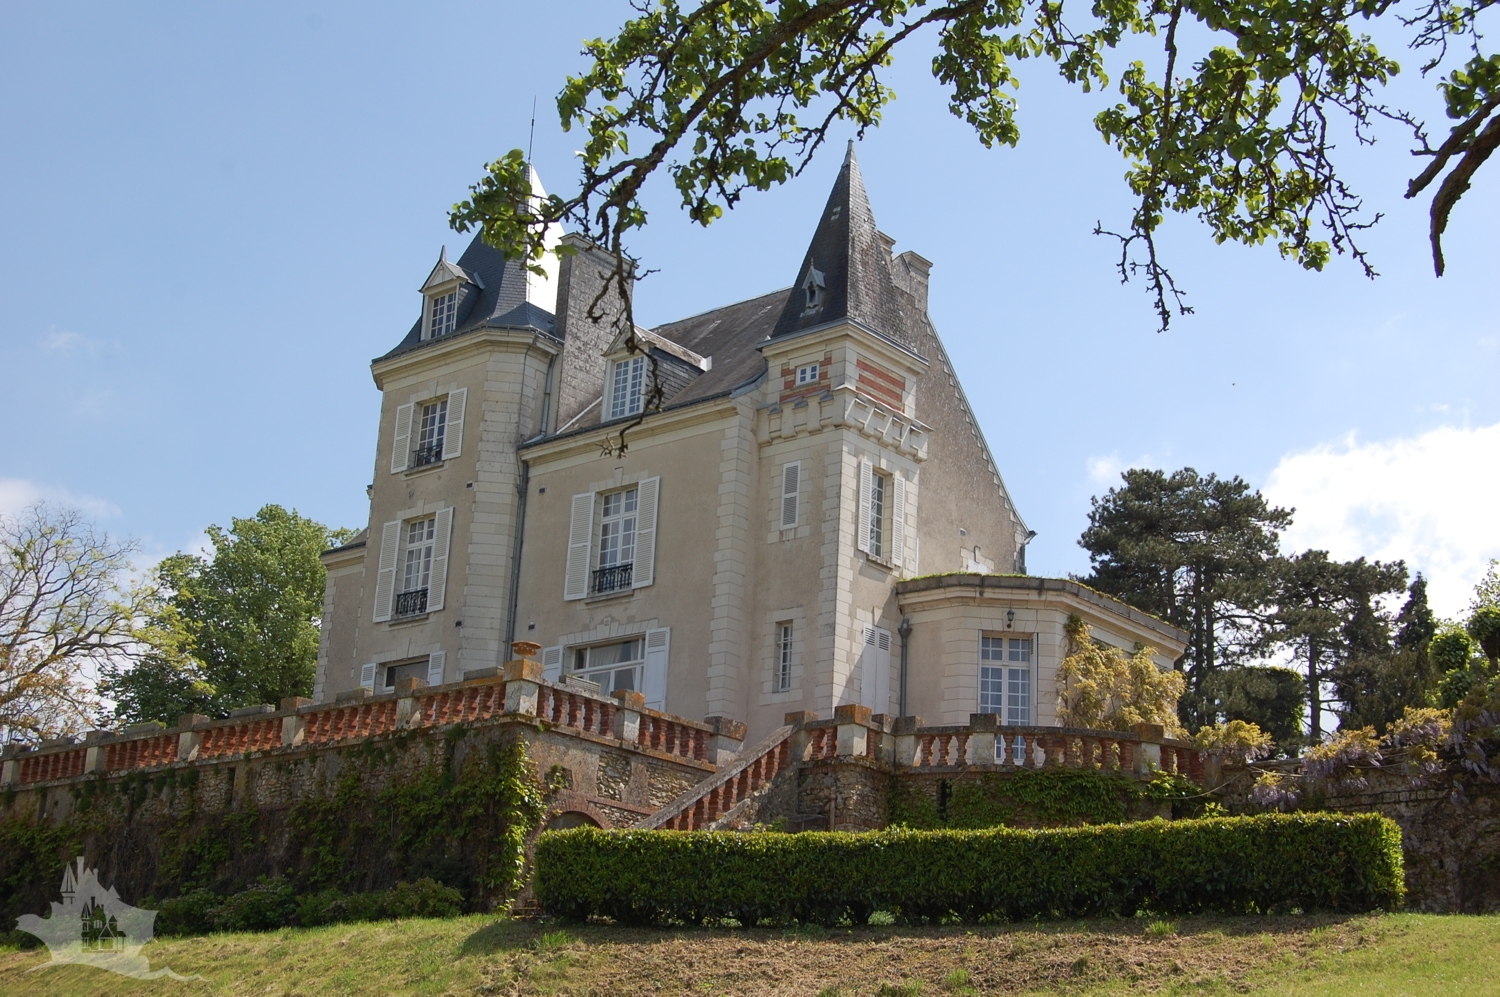 NLEN002013 – Touraine Chateau